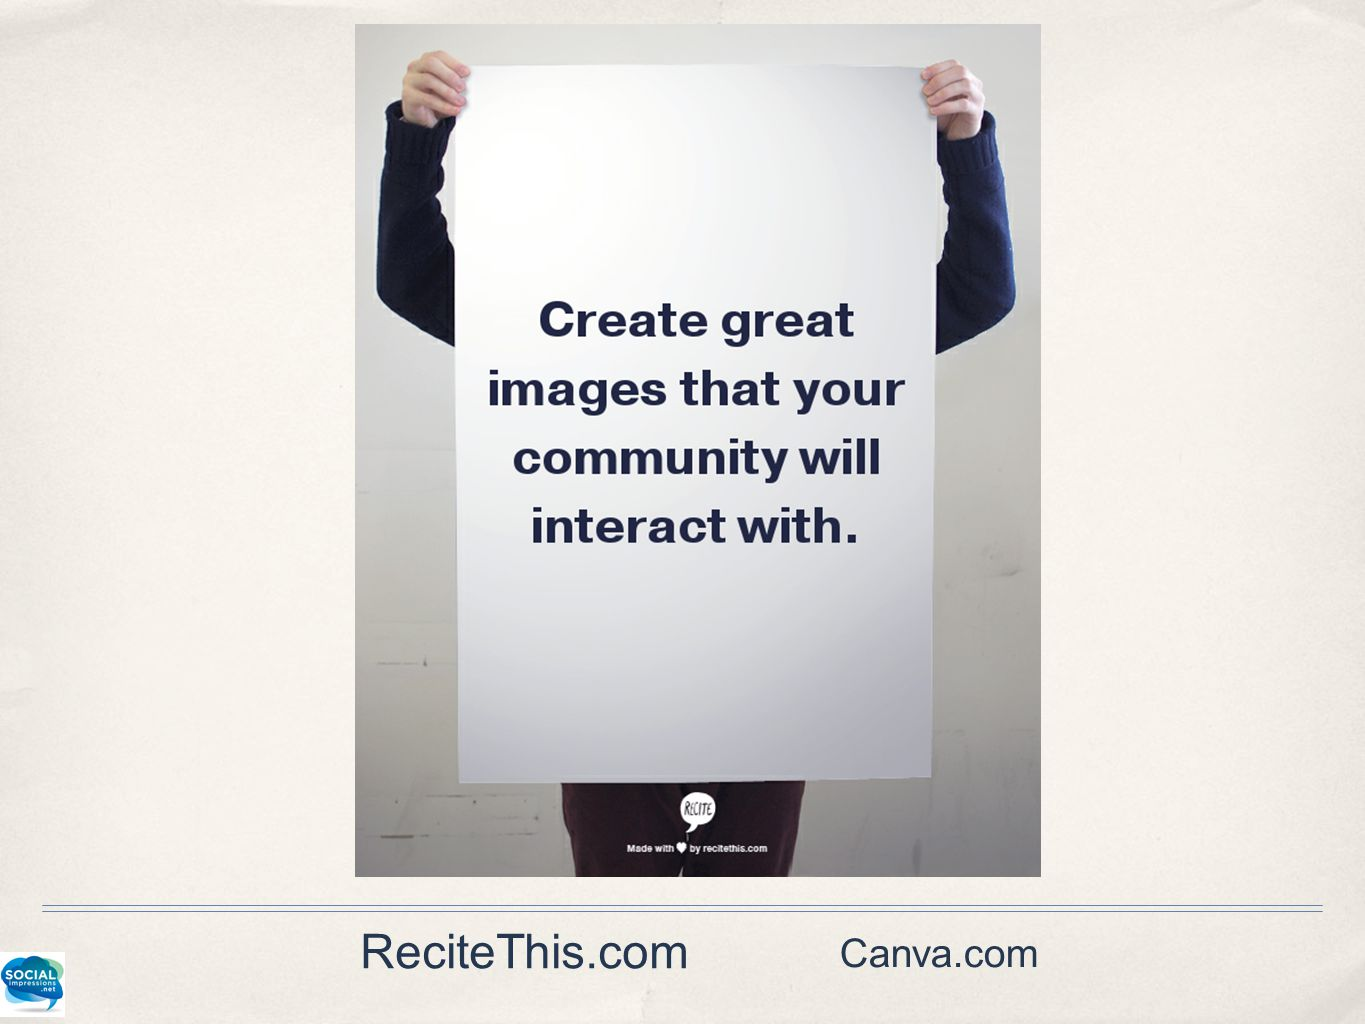 ReciteThis.com Canva.com